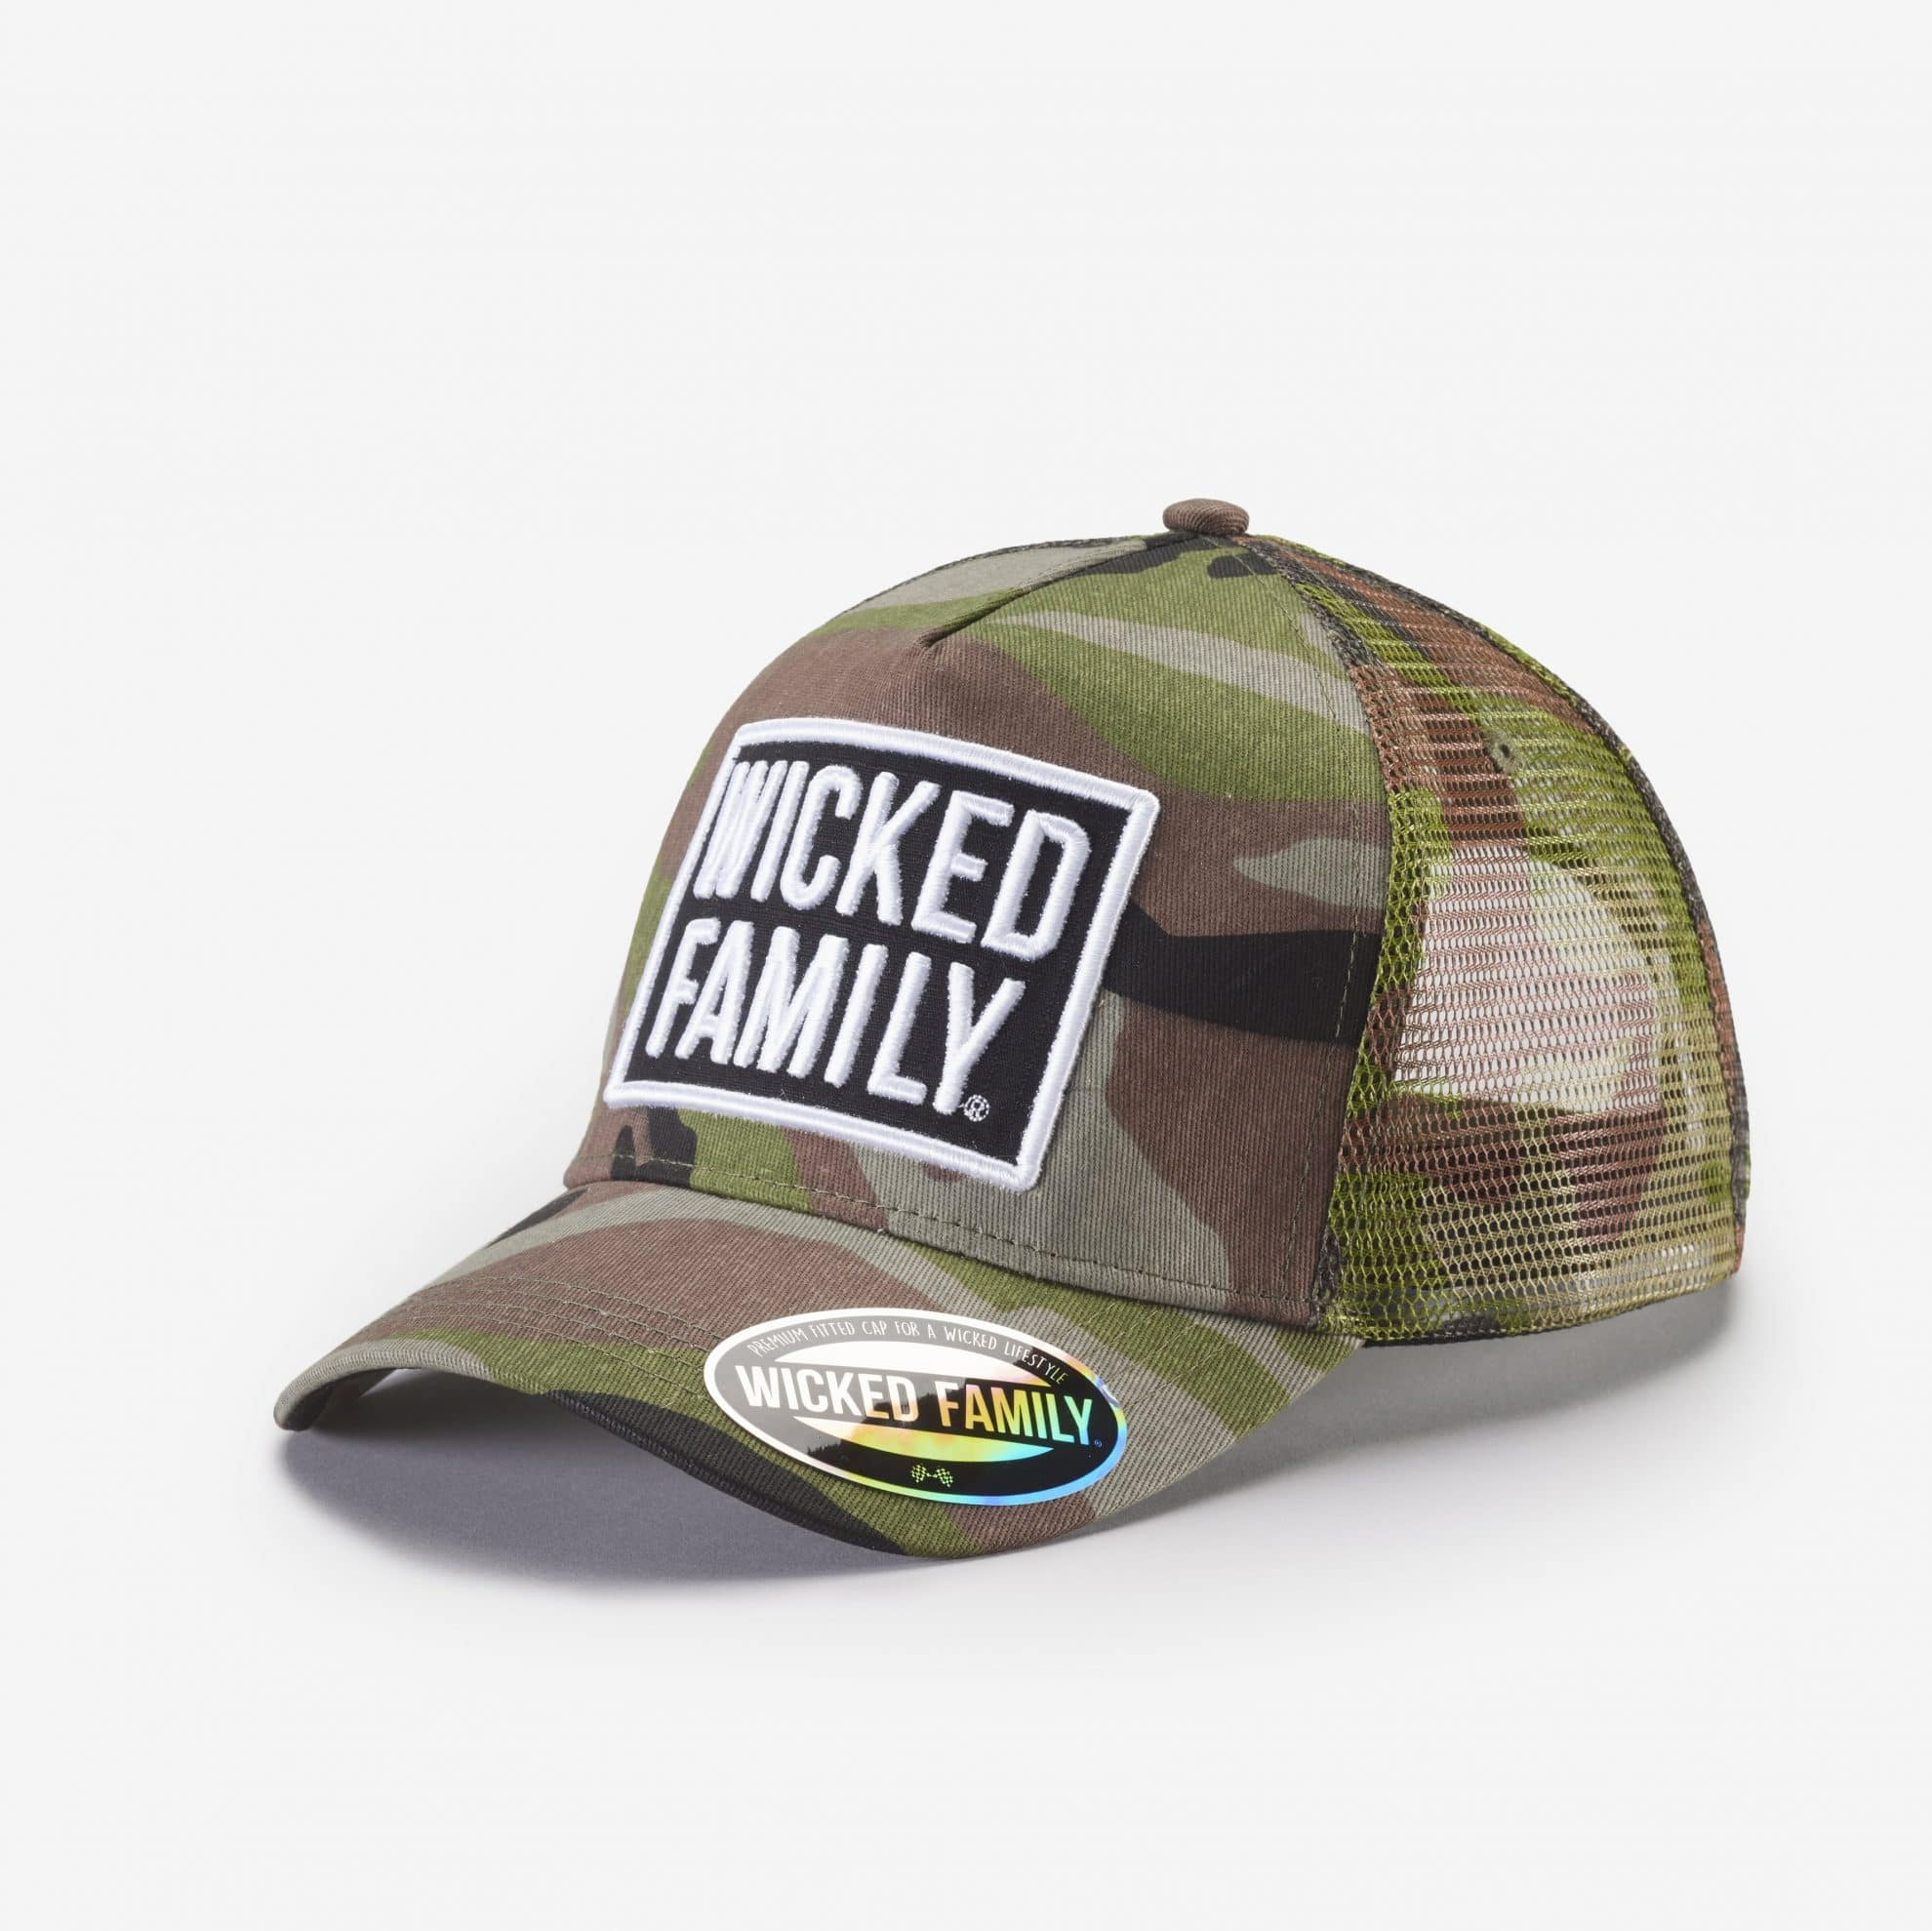 0bbbb965935 WICKED FAMILY SNAPBACK HAT